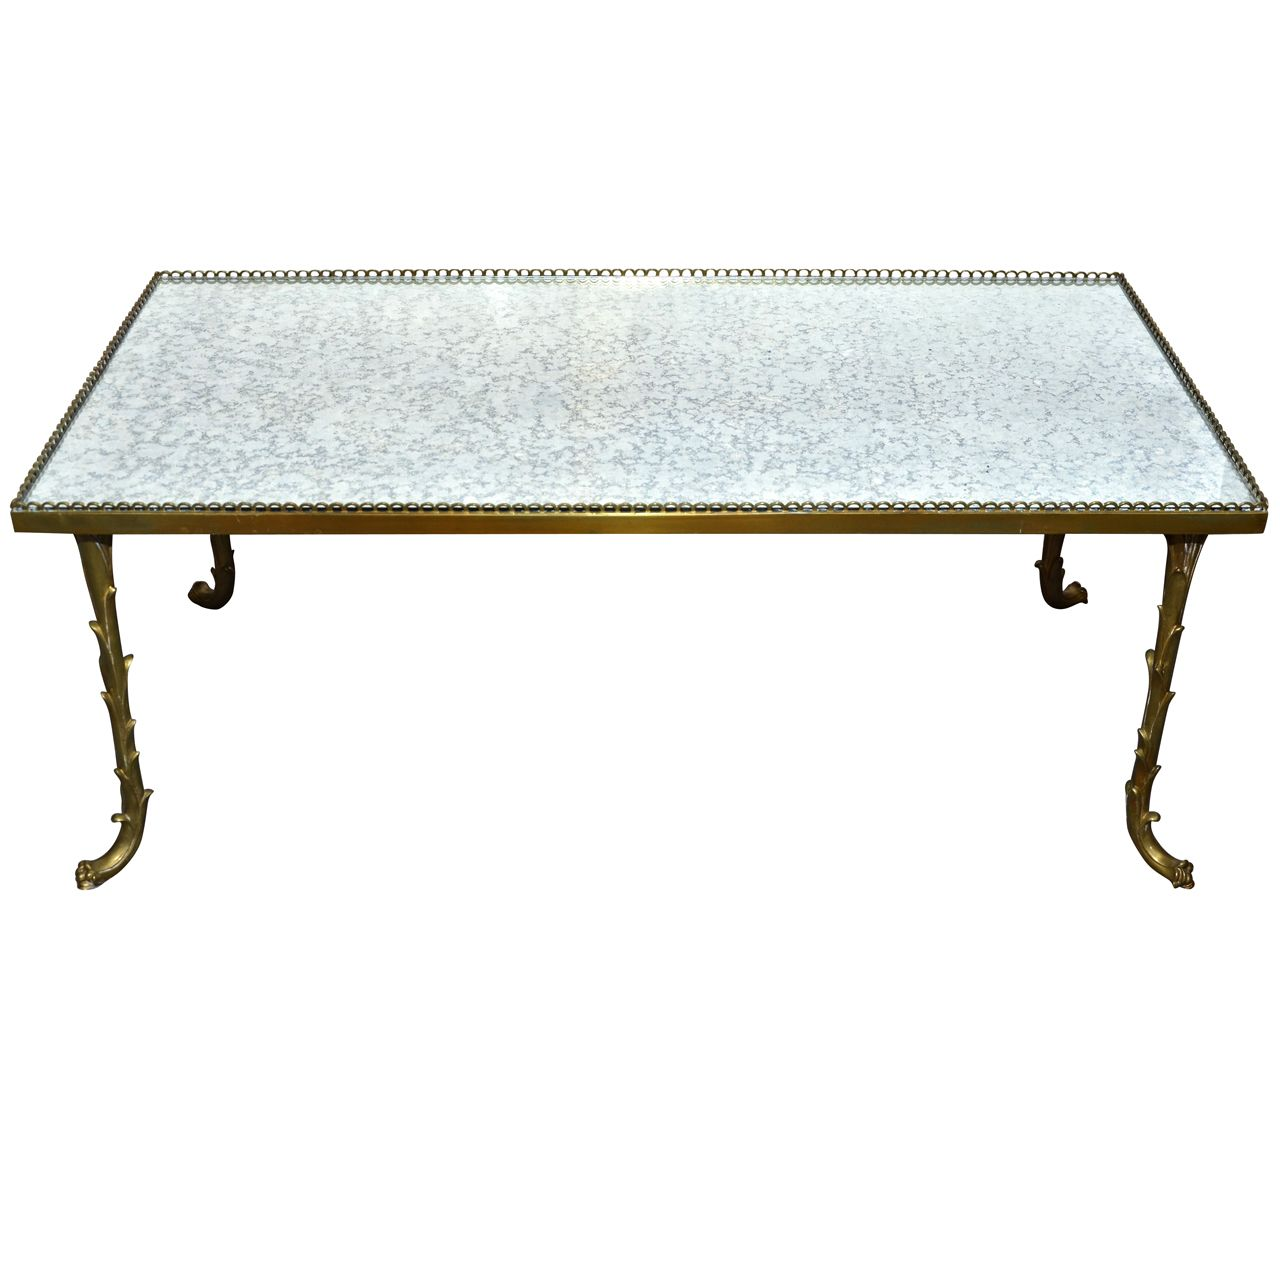 1970's Brass Coffee Table In The Style Of Maison Bagues